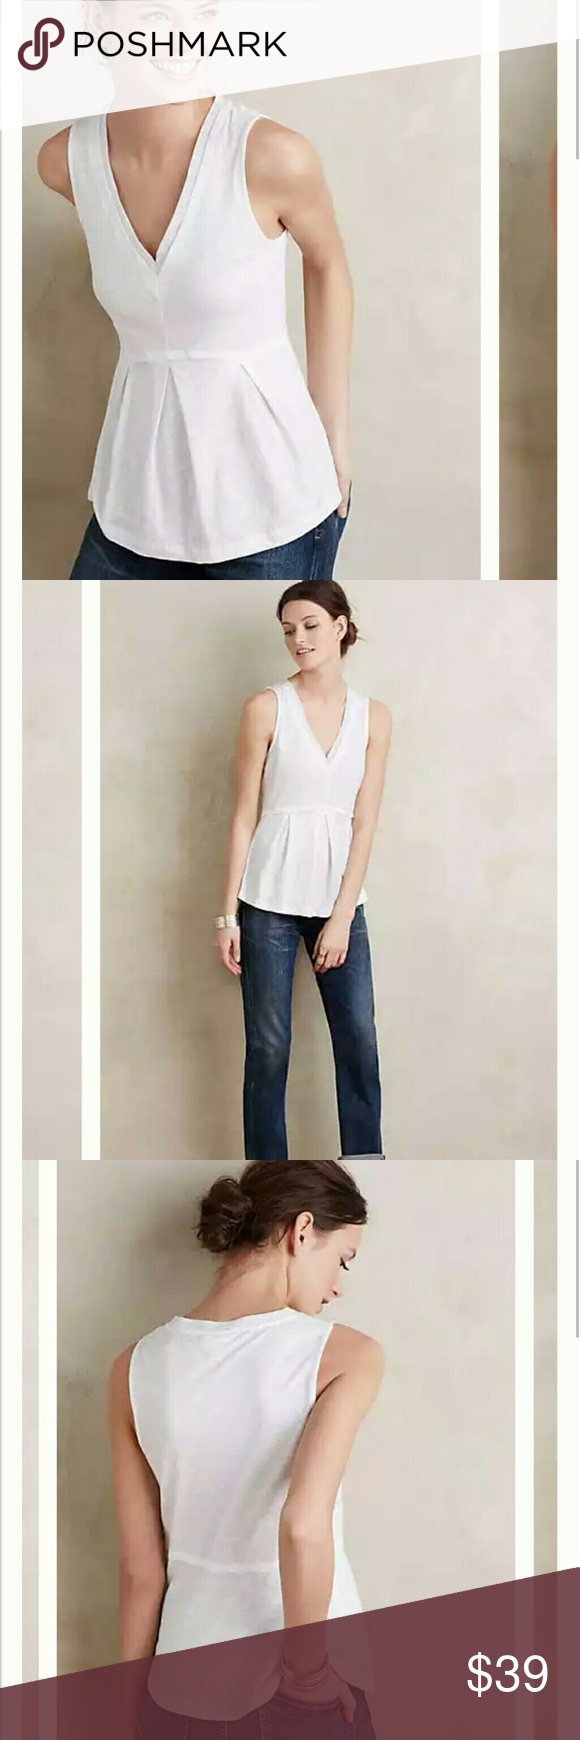 """Amalia Peplum Tank By Deletta for Anthropologie   Cotton Pullover styling  Dimensions: Regular: 26""""L Petite: 24.25""""L Anthropologie Tops"""